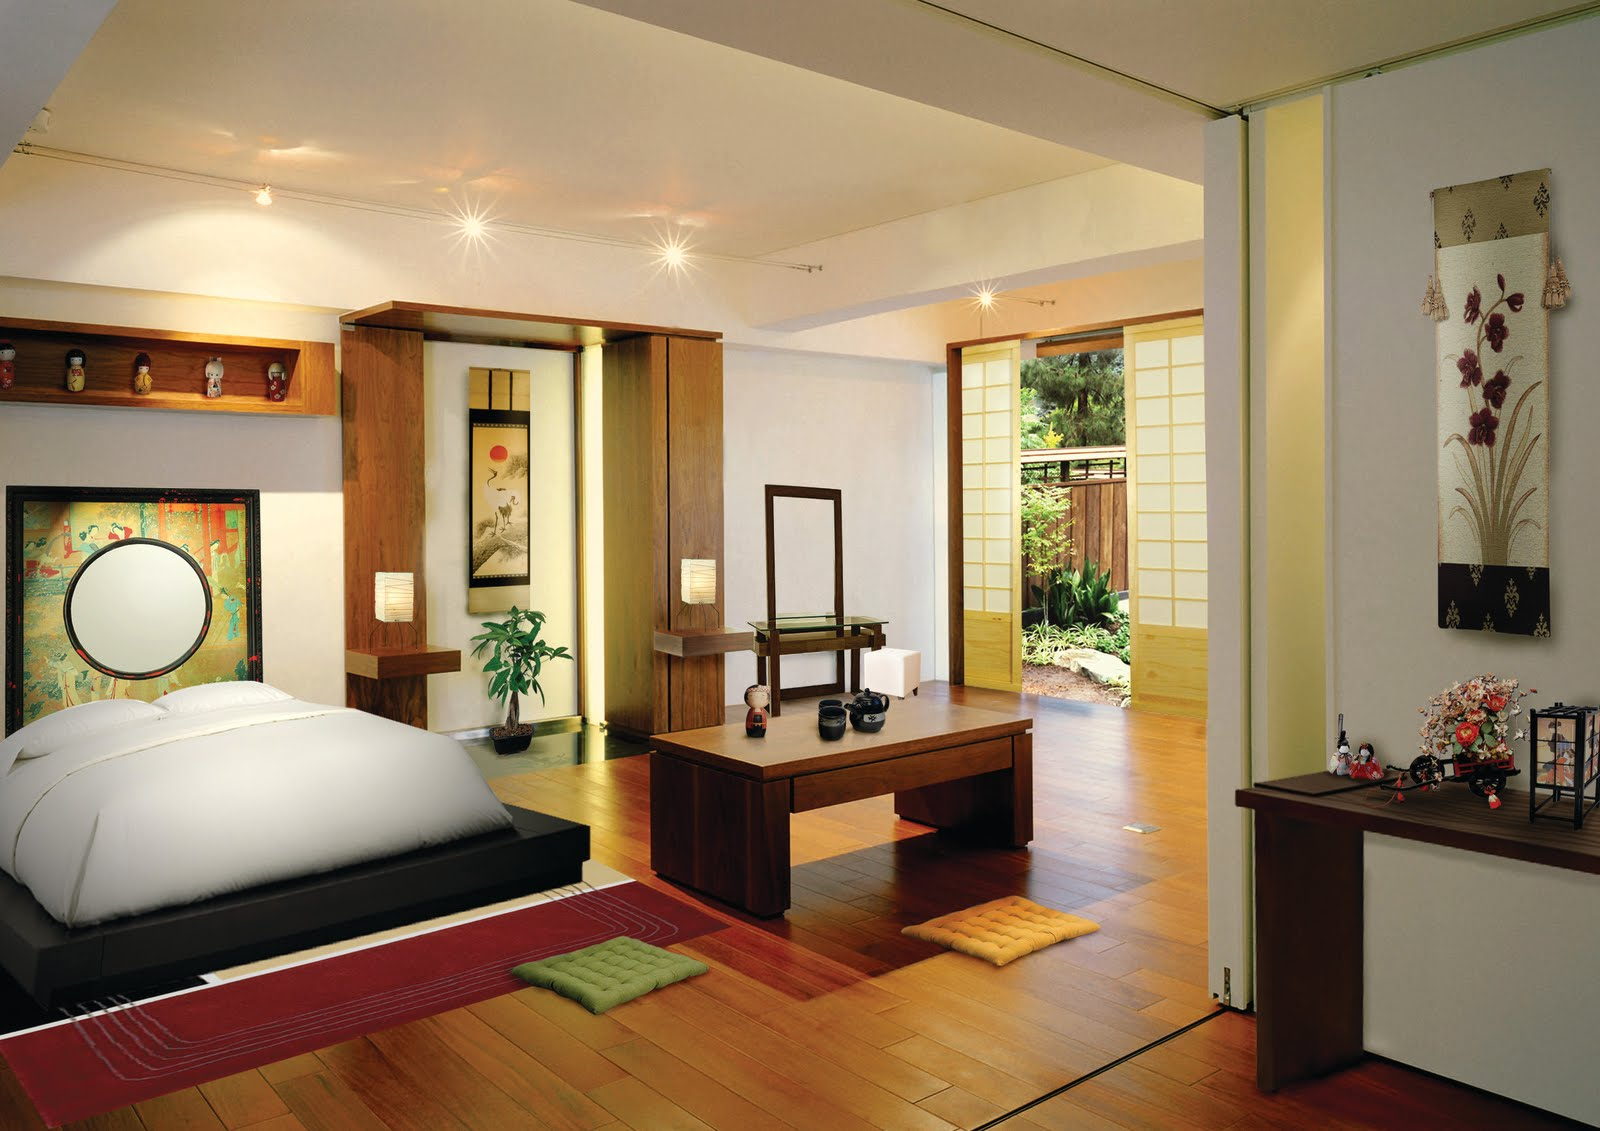 Melokumi japanese style bedroom design for Asian bedroom ideas